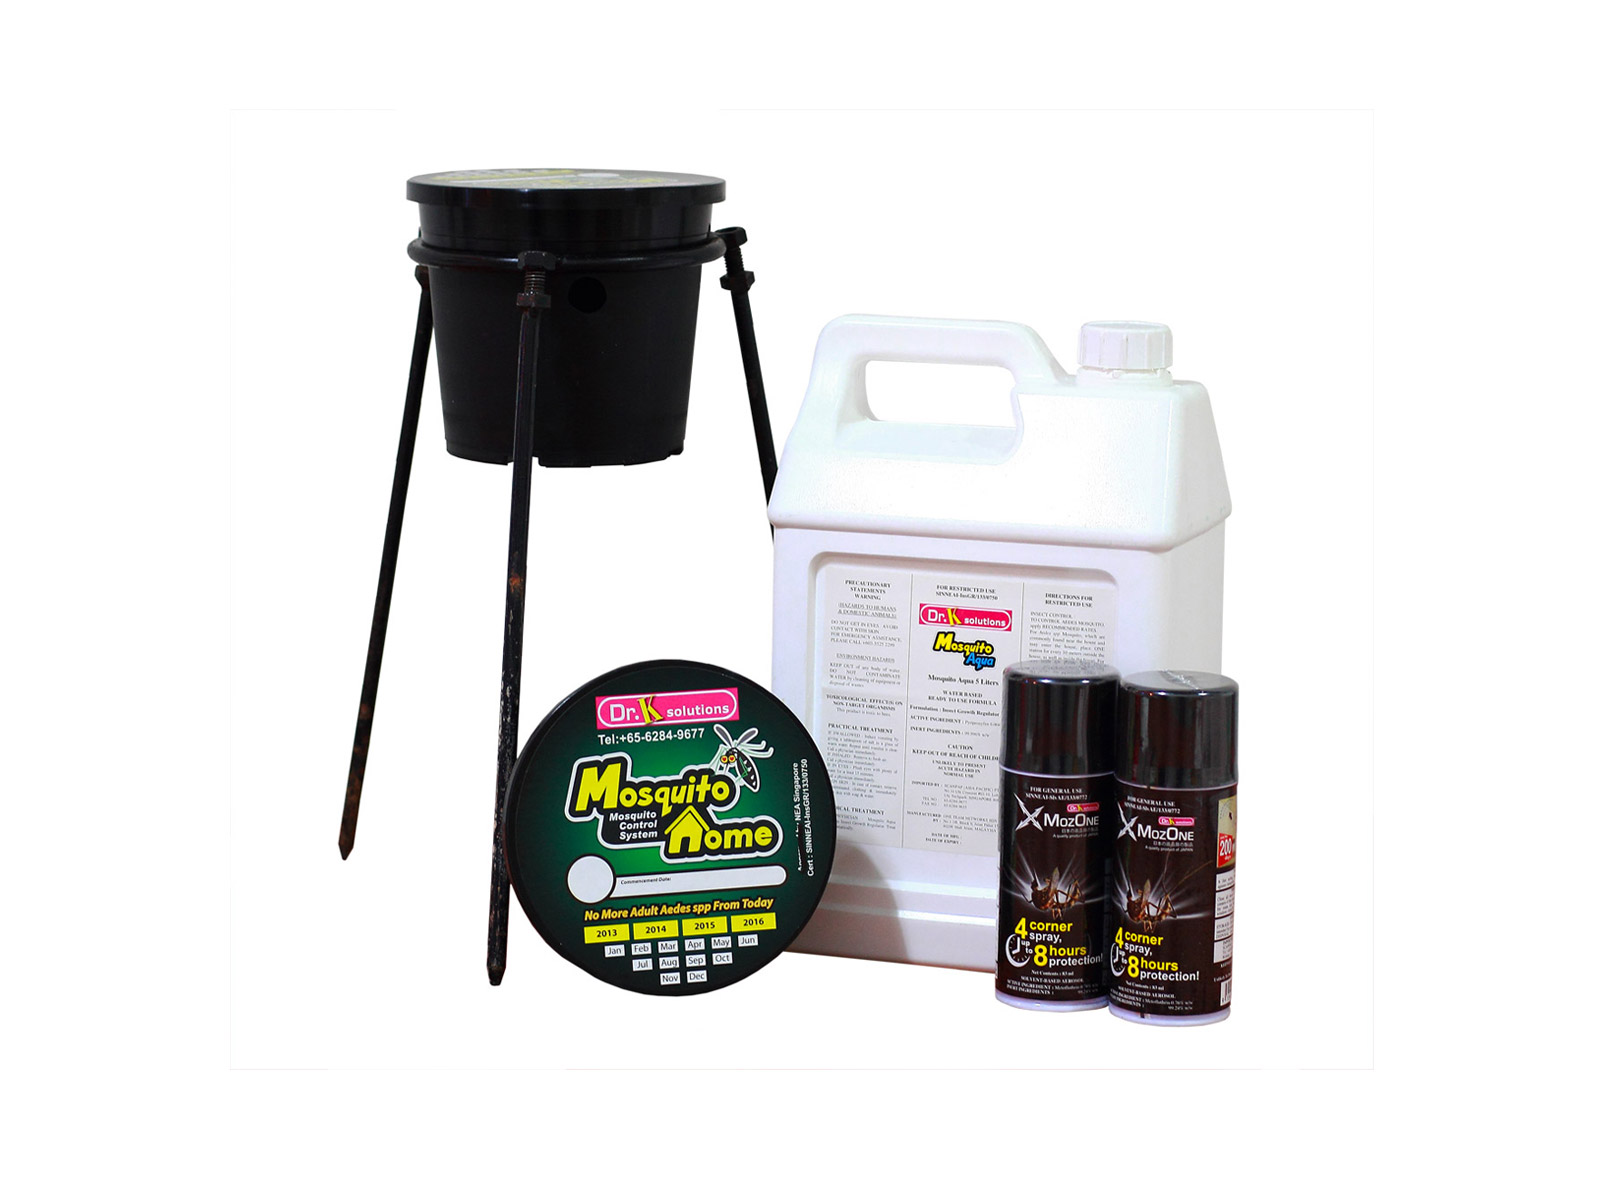 Mosquito Repellent Systems : Mosquito home system scanpap asia pacific pte ltd